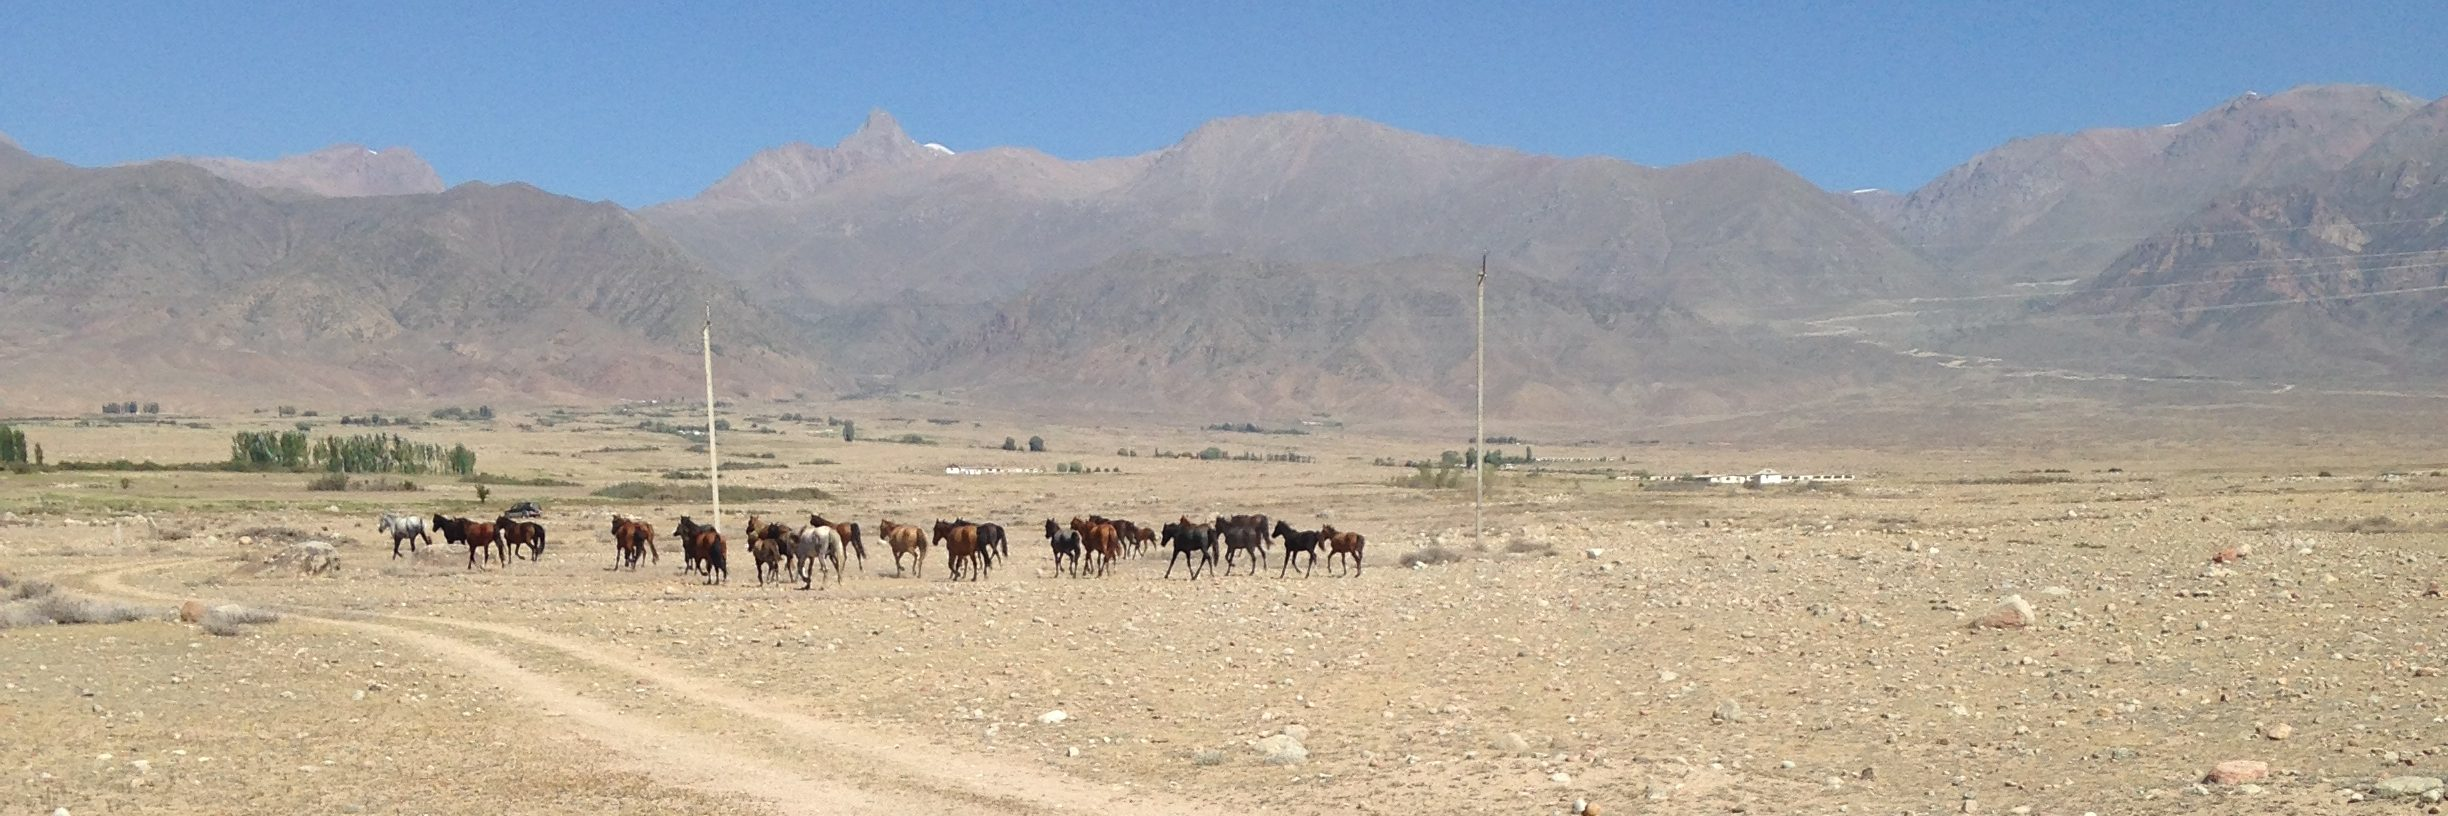 horses and a backdrop of mountains